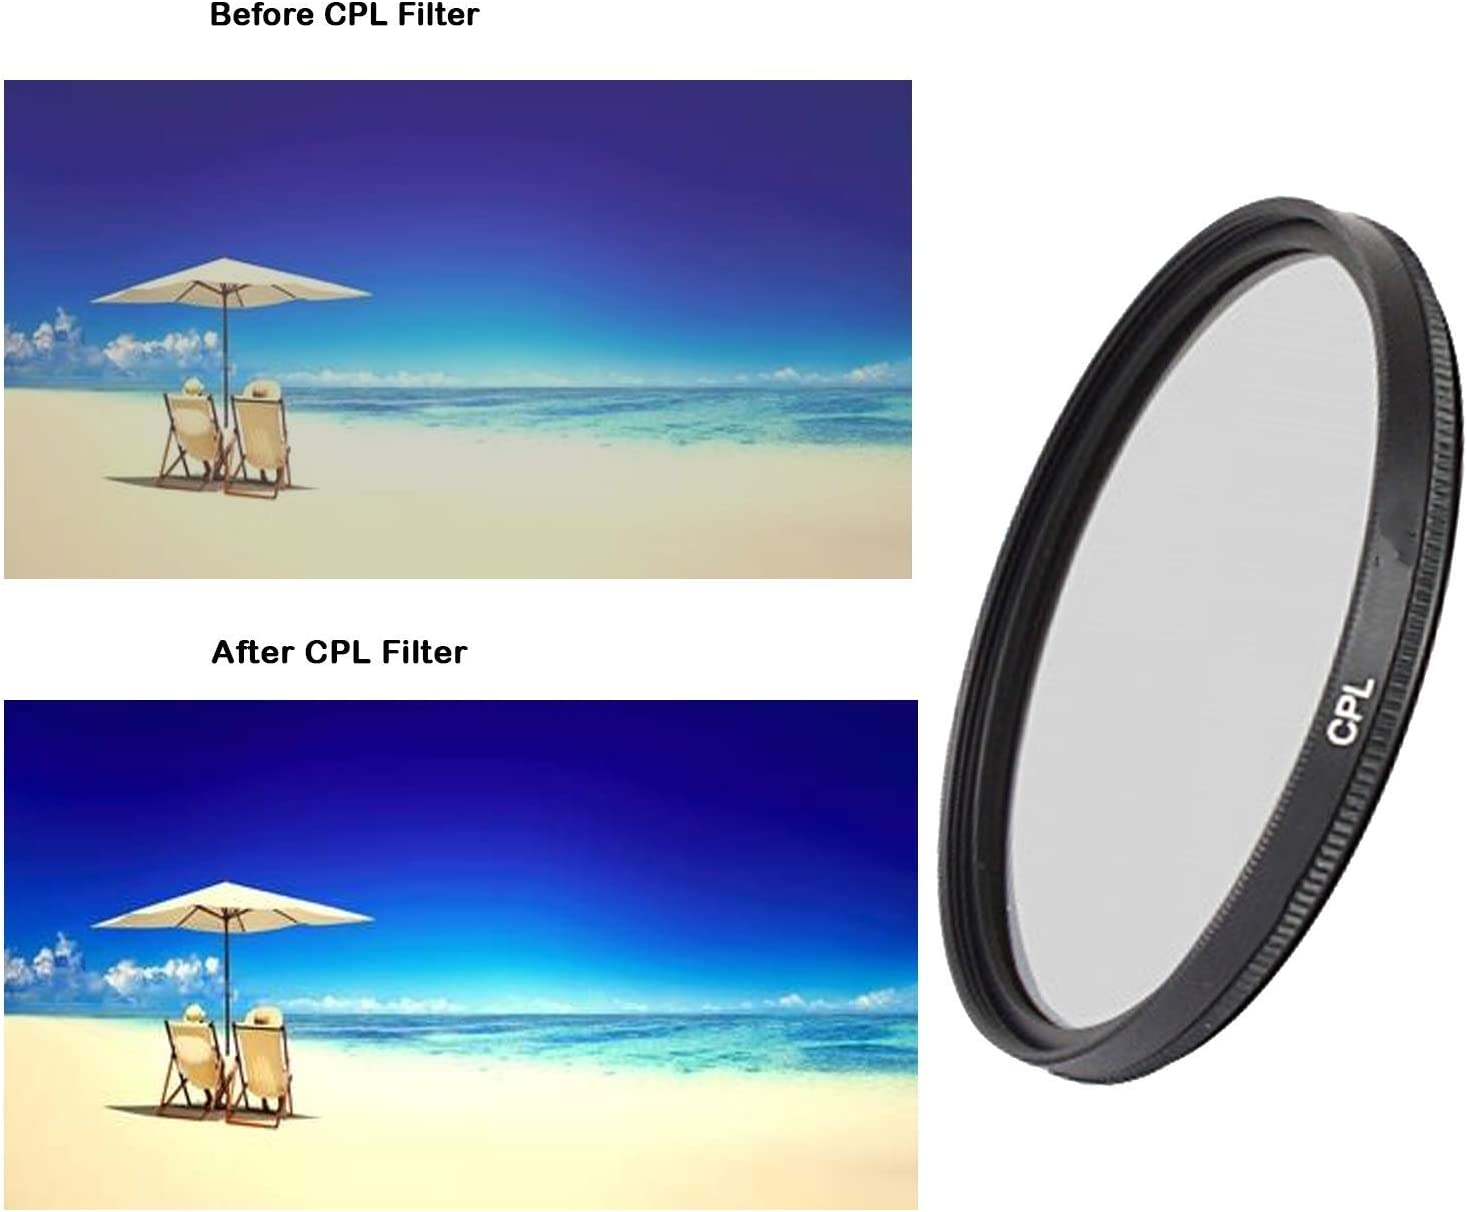 58mm CPL Circular Polarizer Camera Lens Filter for Canon EF 70-300mm f//4-5.6 is USM